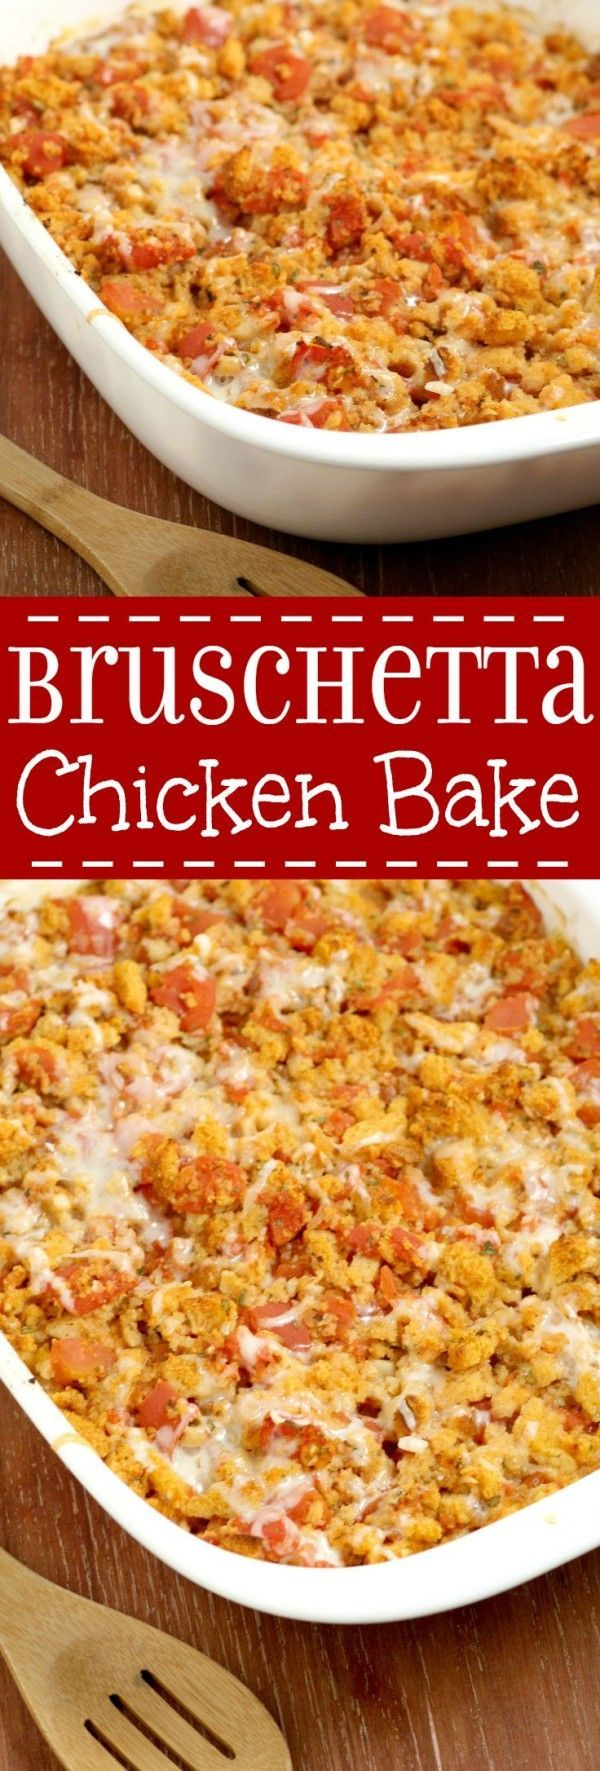 Bruschetta Chicken Bake is a quick and easy family dinner recipe packed with flavorful tomatoes and garlic, gooey cheese, and a crunchy topping. This makes a great freezer meal too!